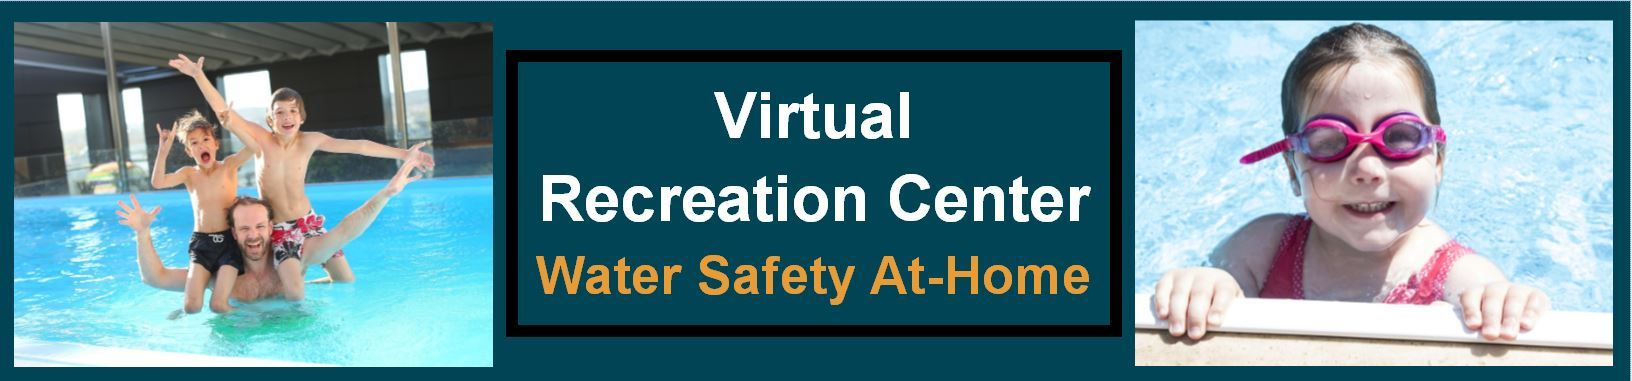 Virtual Recreation Center- Water Safety At-Home